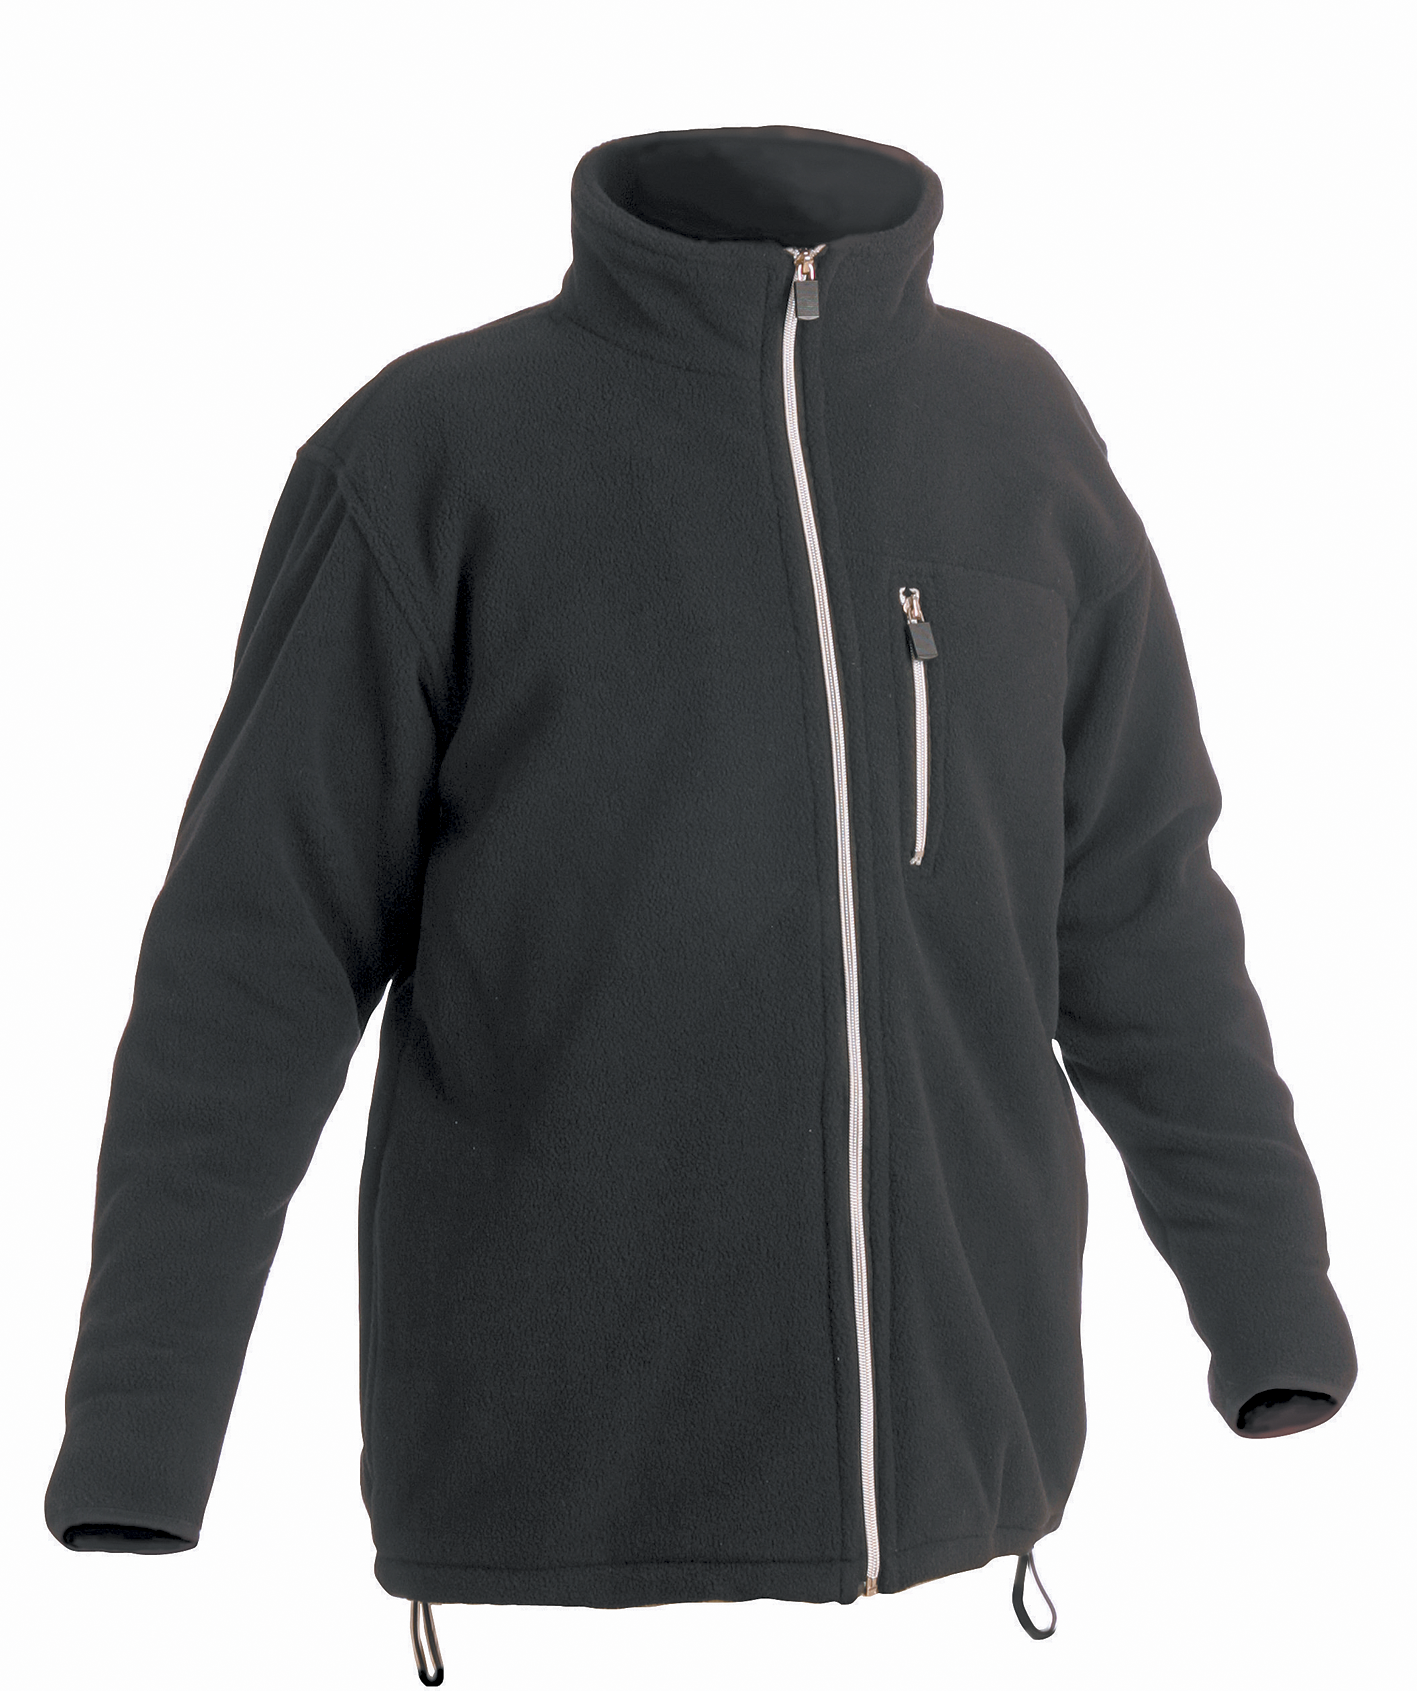 Image of   Jakke Fleece Karela